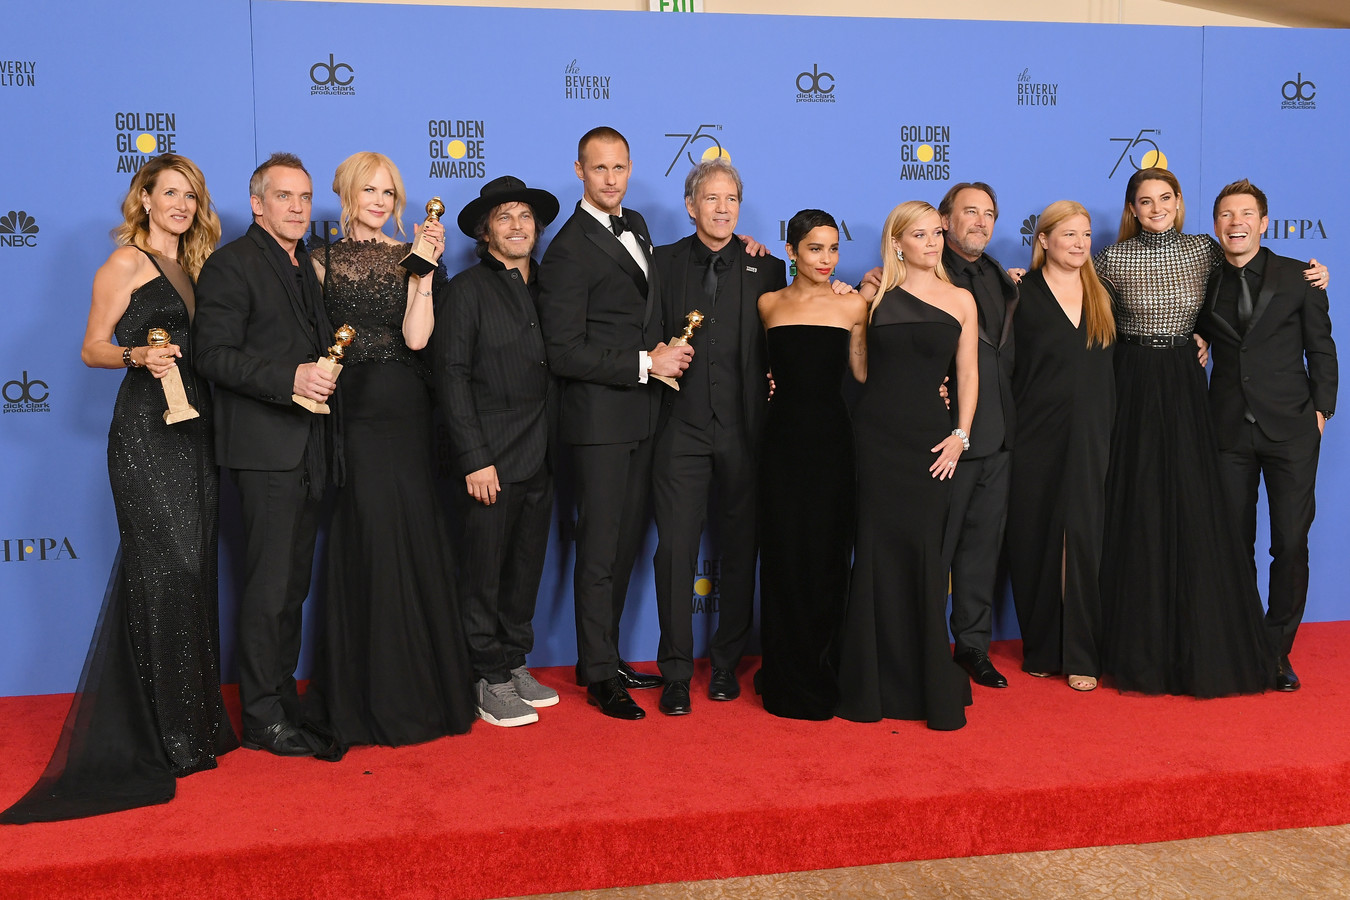 Golden Globes 2018, Big Little Lies cast